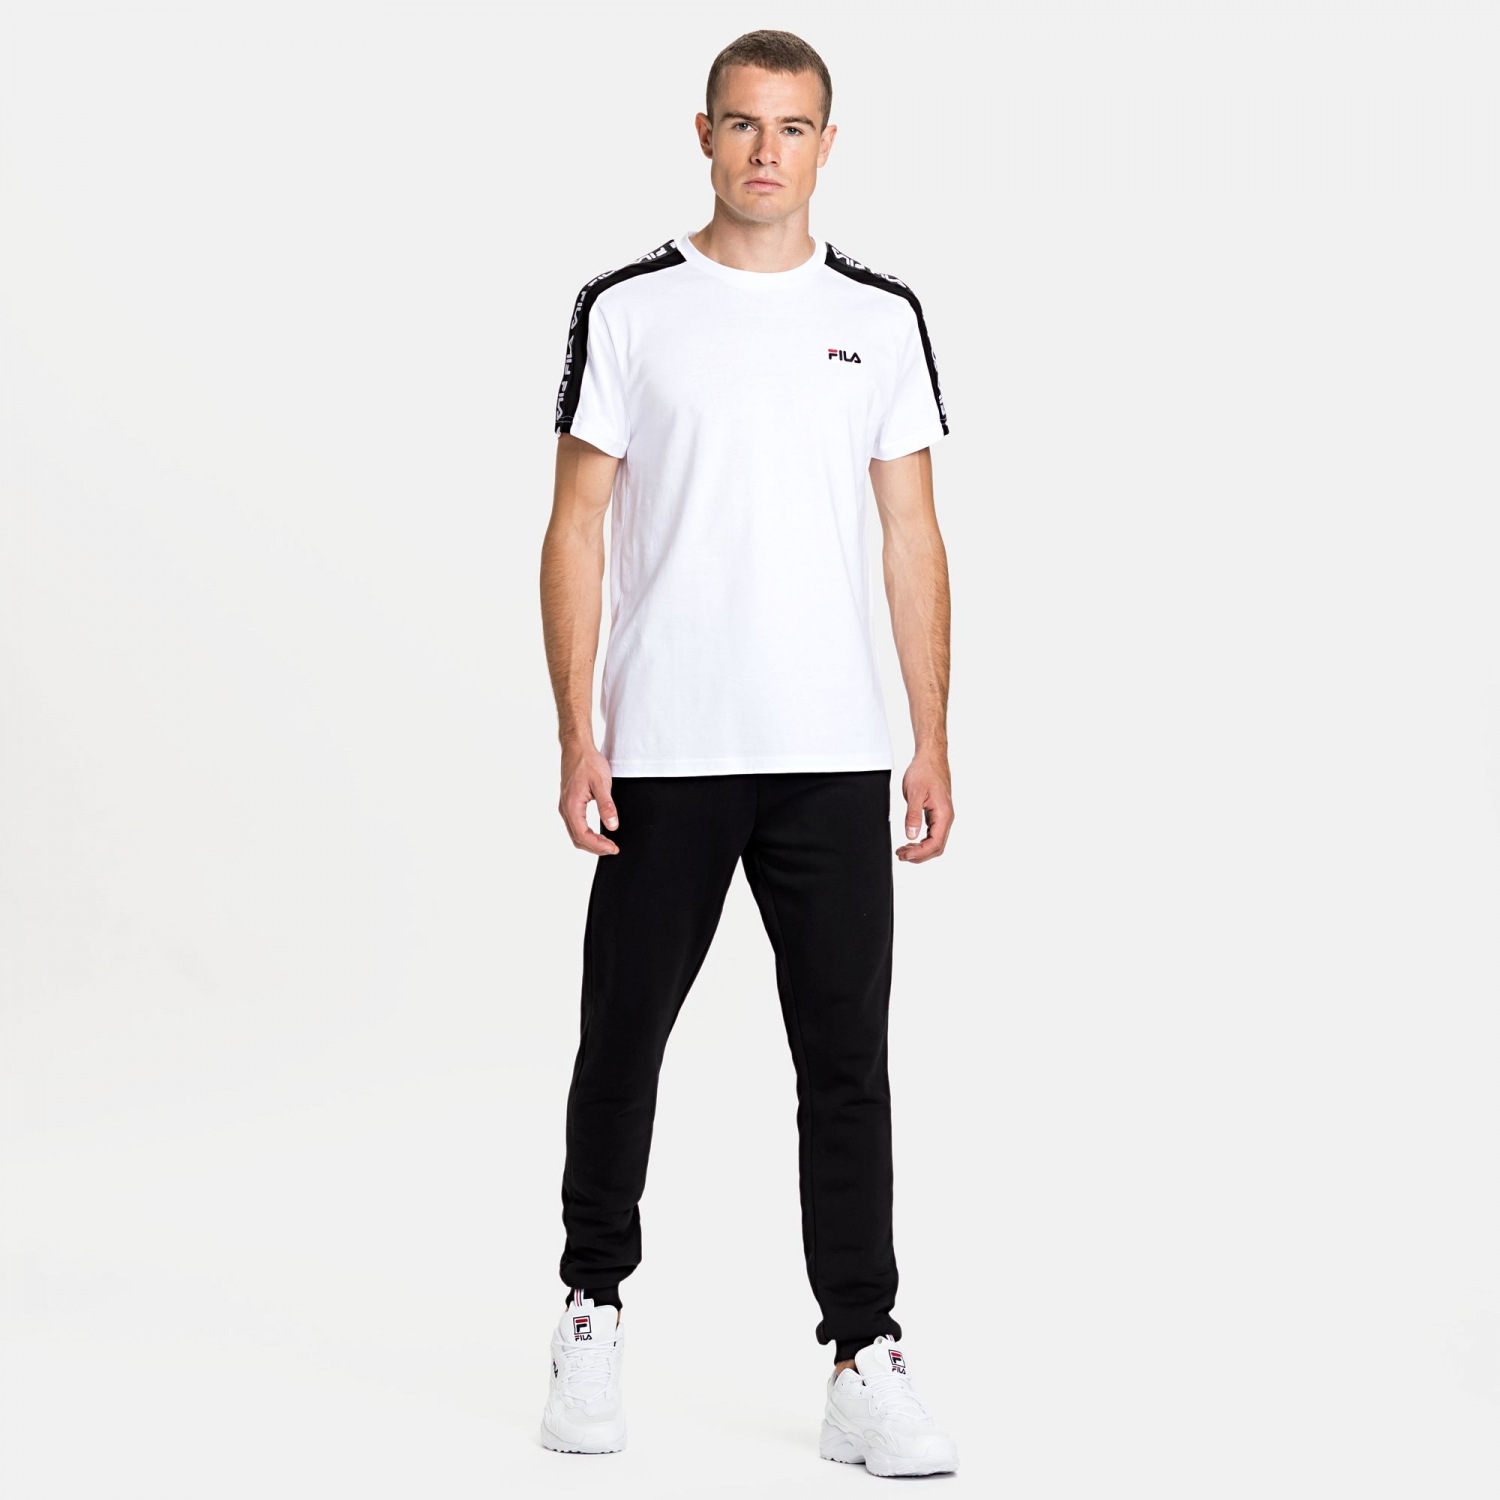 Fila Thanos Tee white-black Bild 3